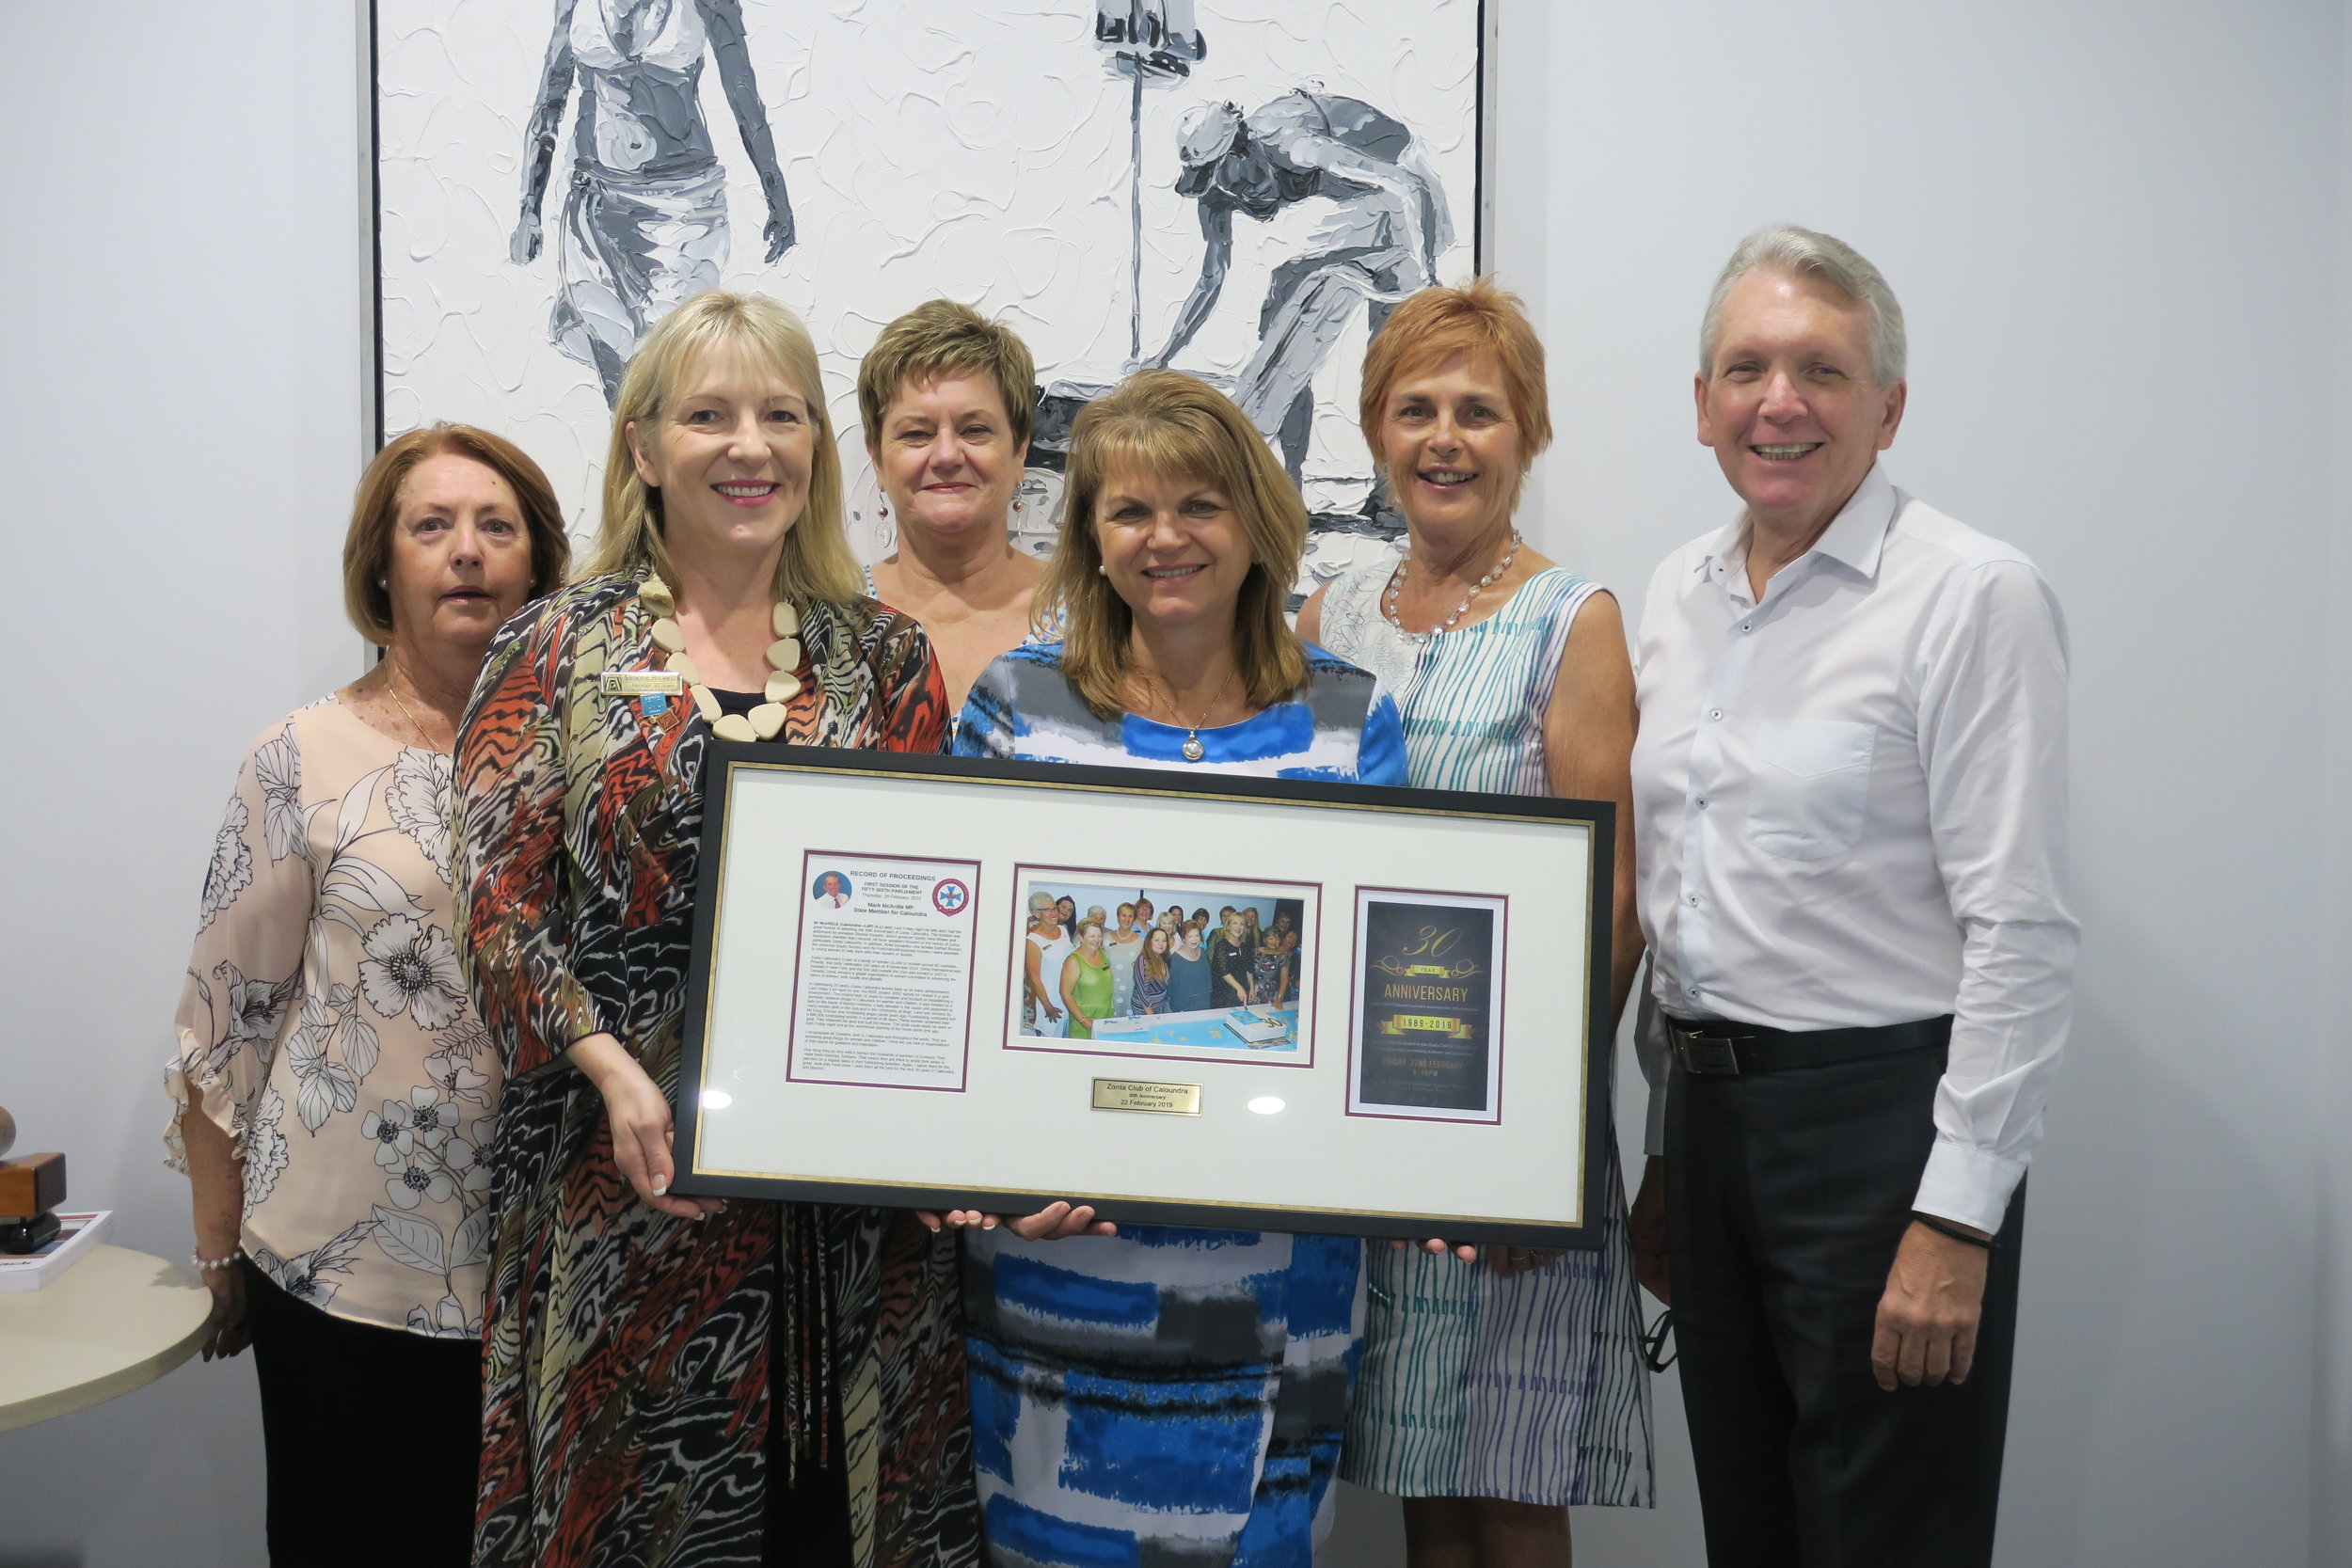 Zonta's Marilyn Holness, Simone Ricketts (President) Pam Hall (Vice-President), Kelly Callaghan (Past President) and Jillian Scott are presented with a special 30th anniversary commemoration by Mark McArdle MP.